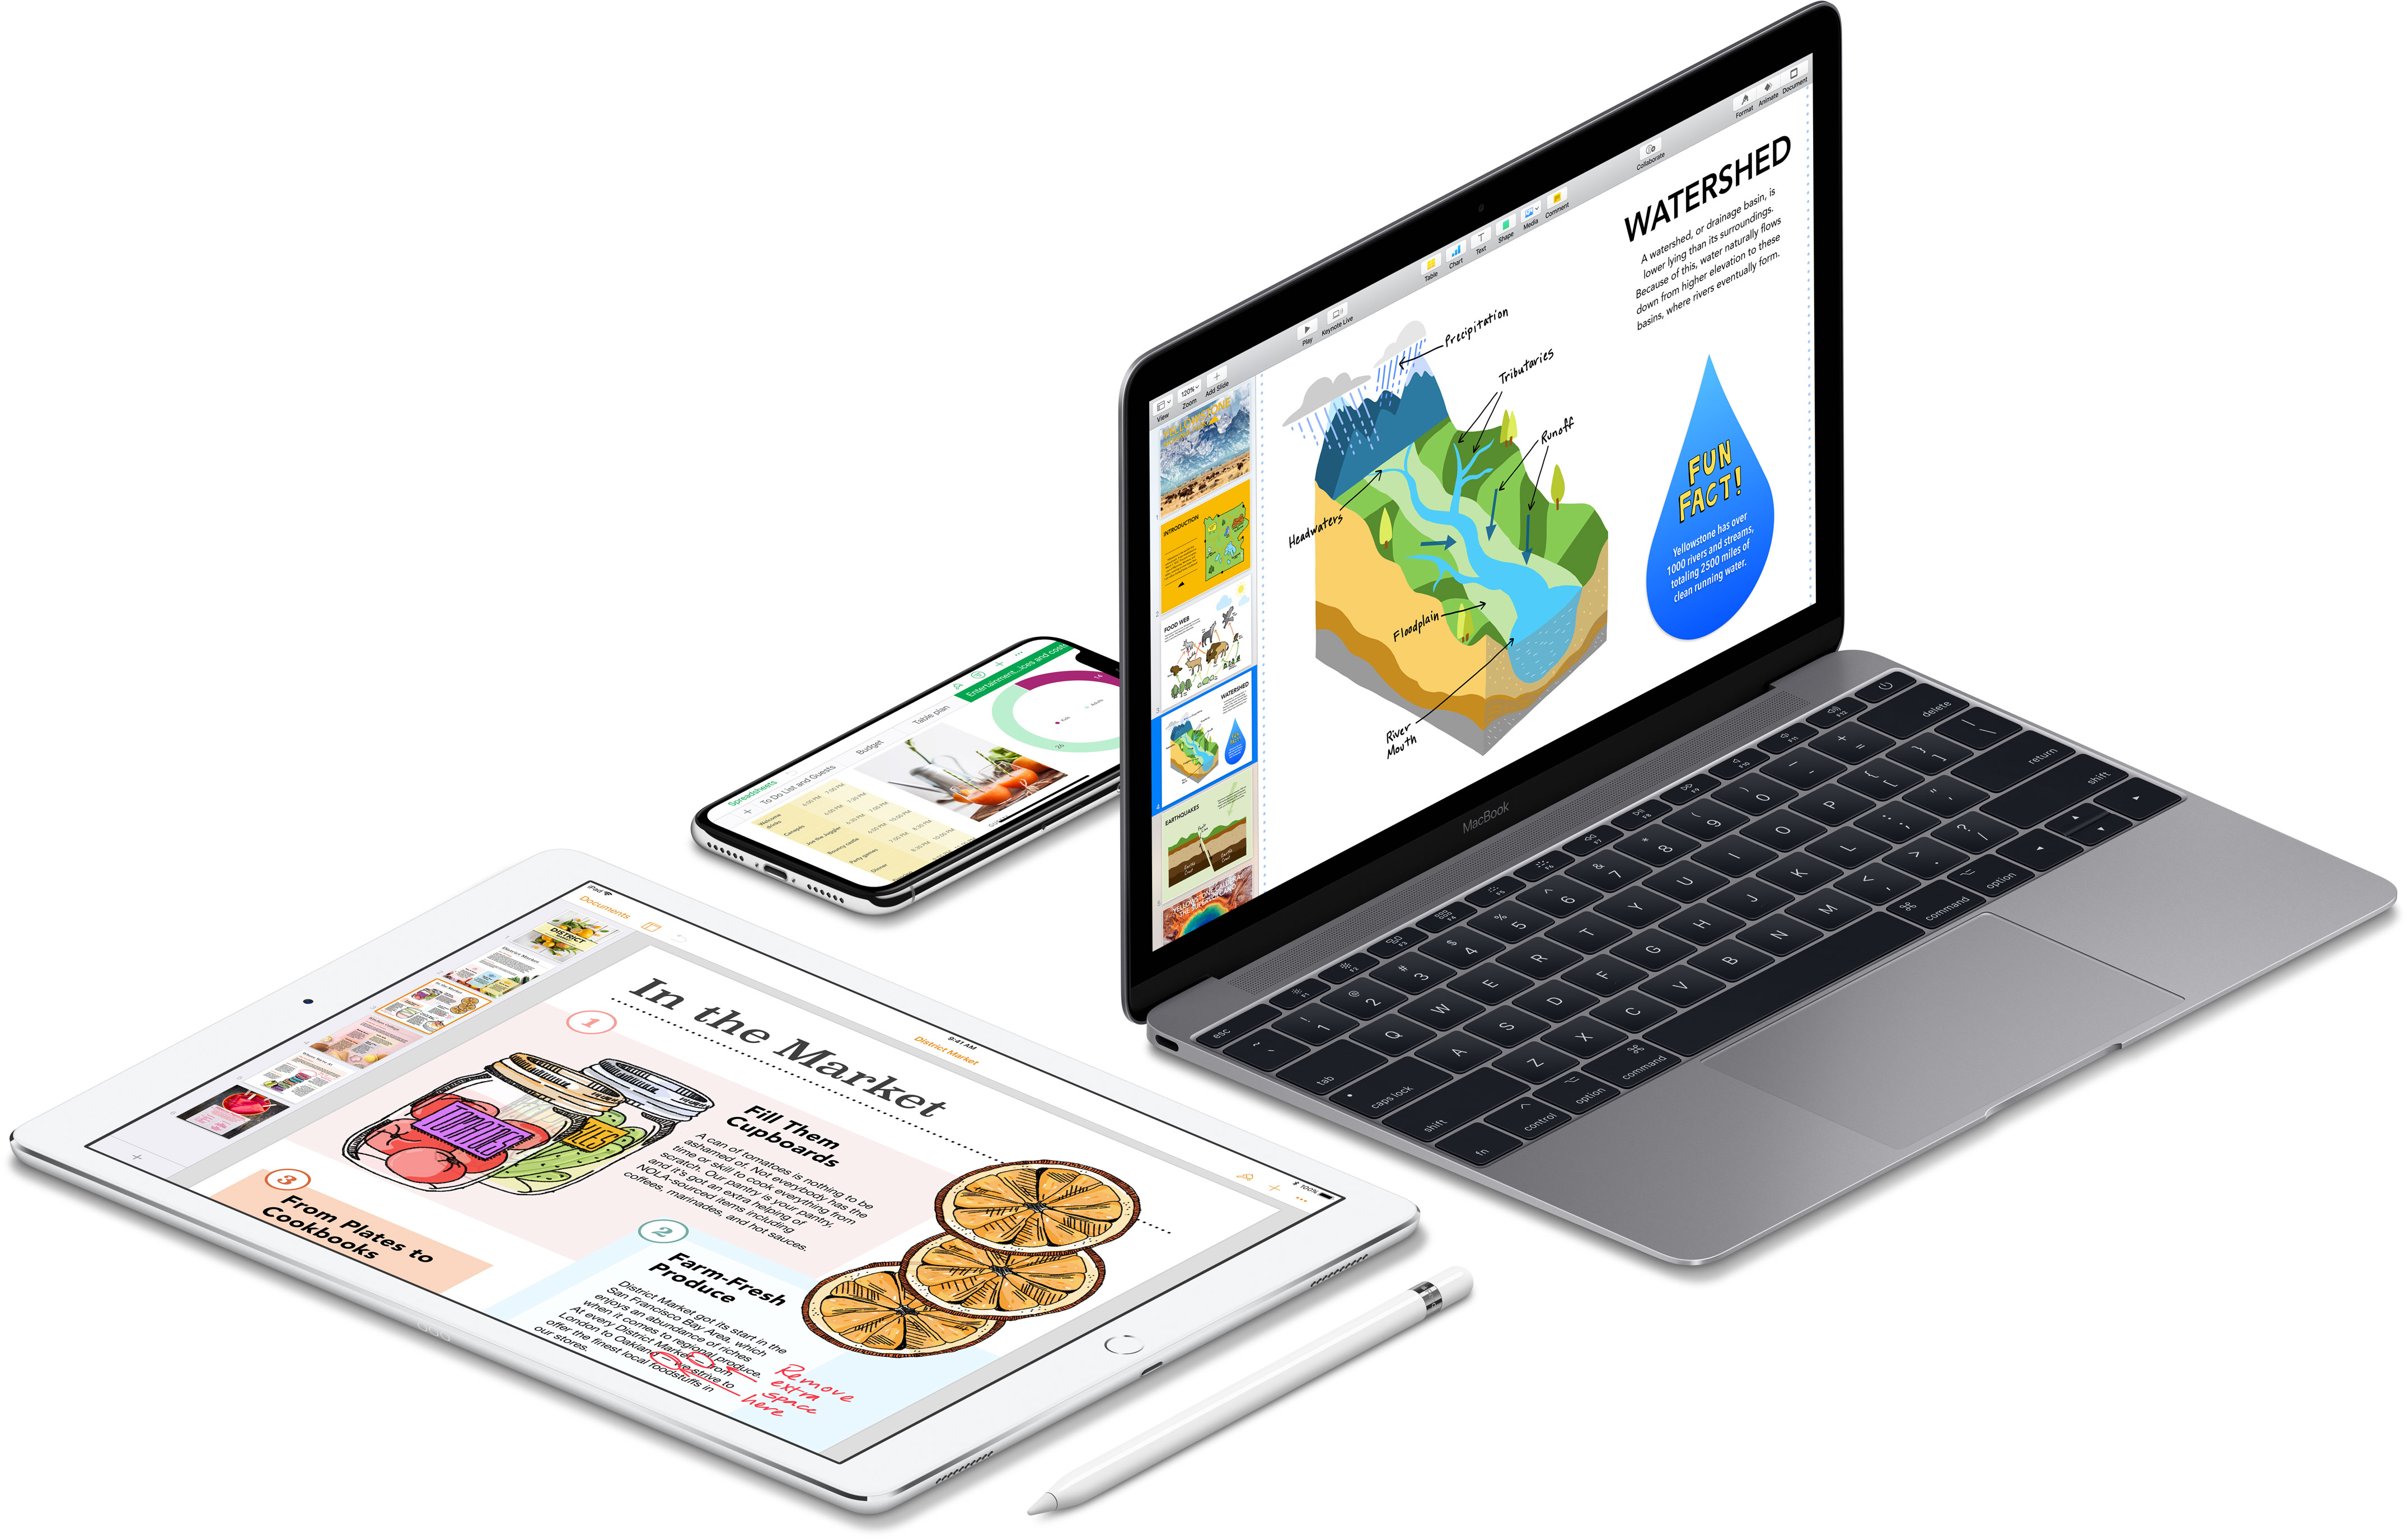 iWork (Pages, Numbers e Keynote)